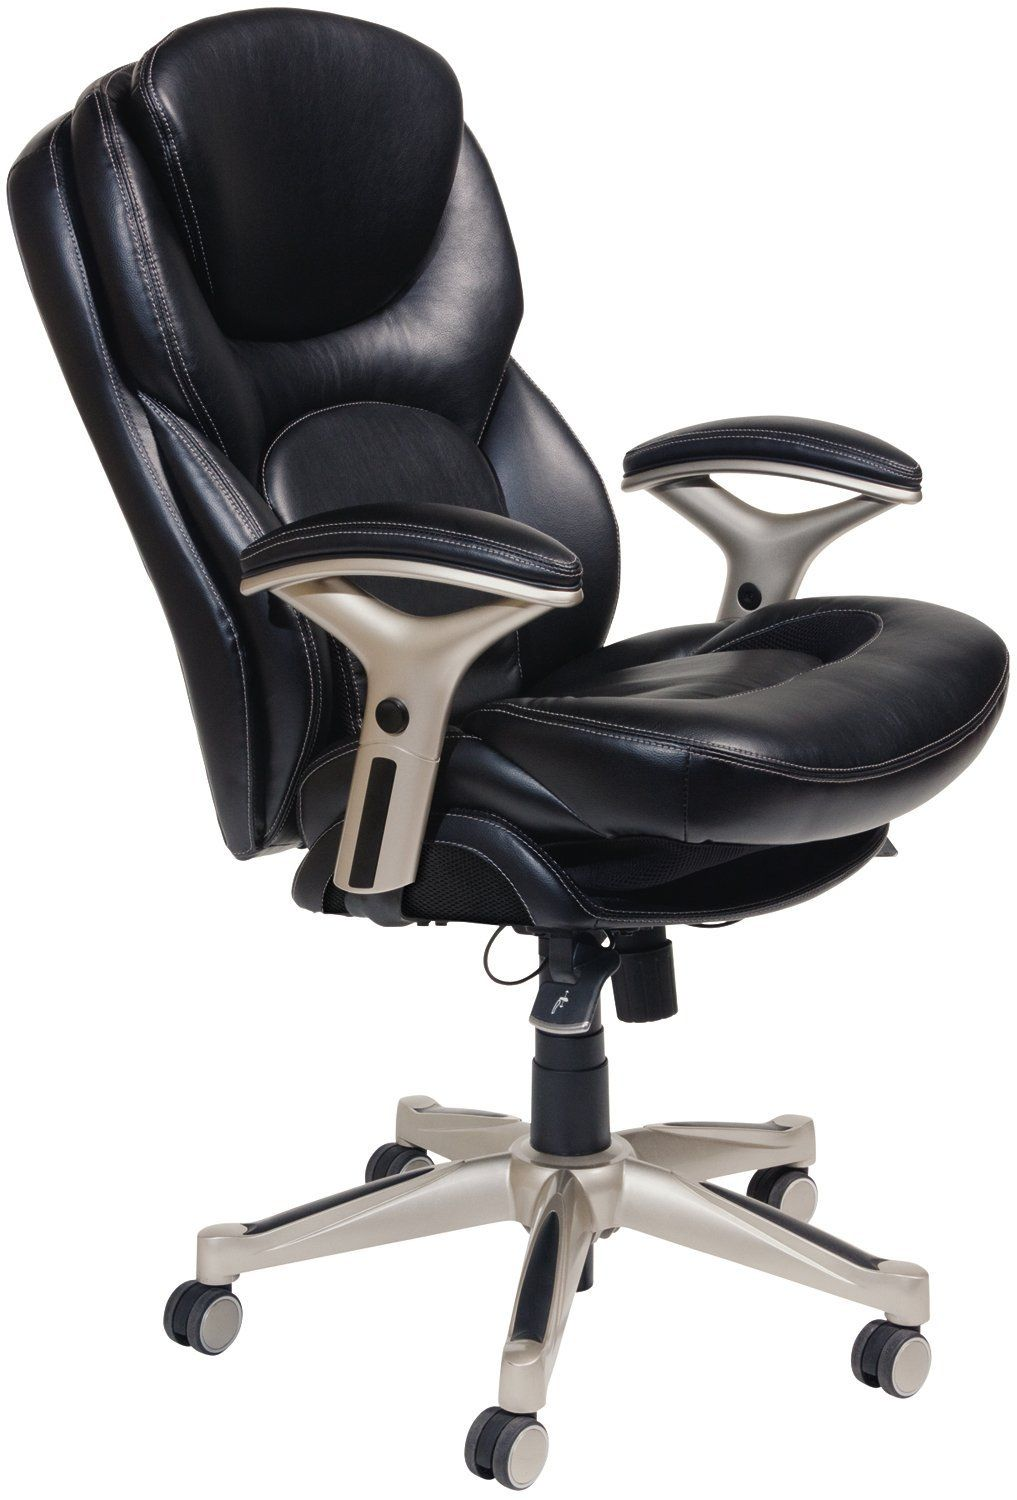 30+ Serta Icomfort I30 High Back Executive Chair - Home Office